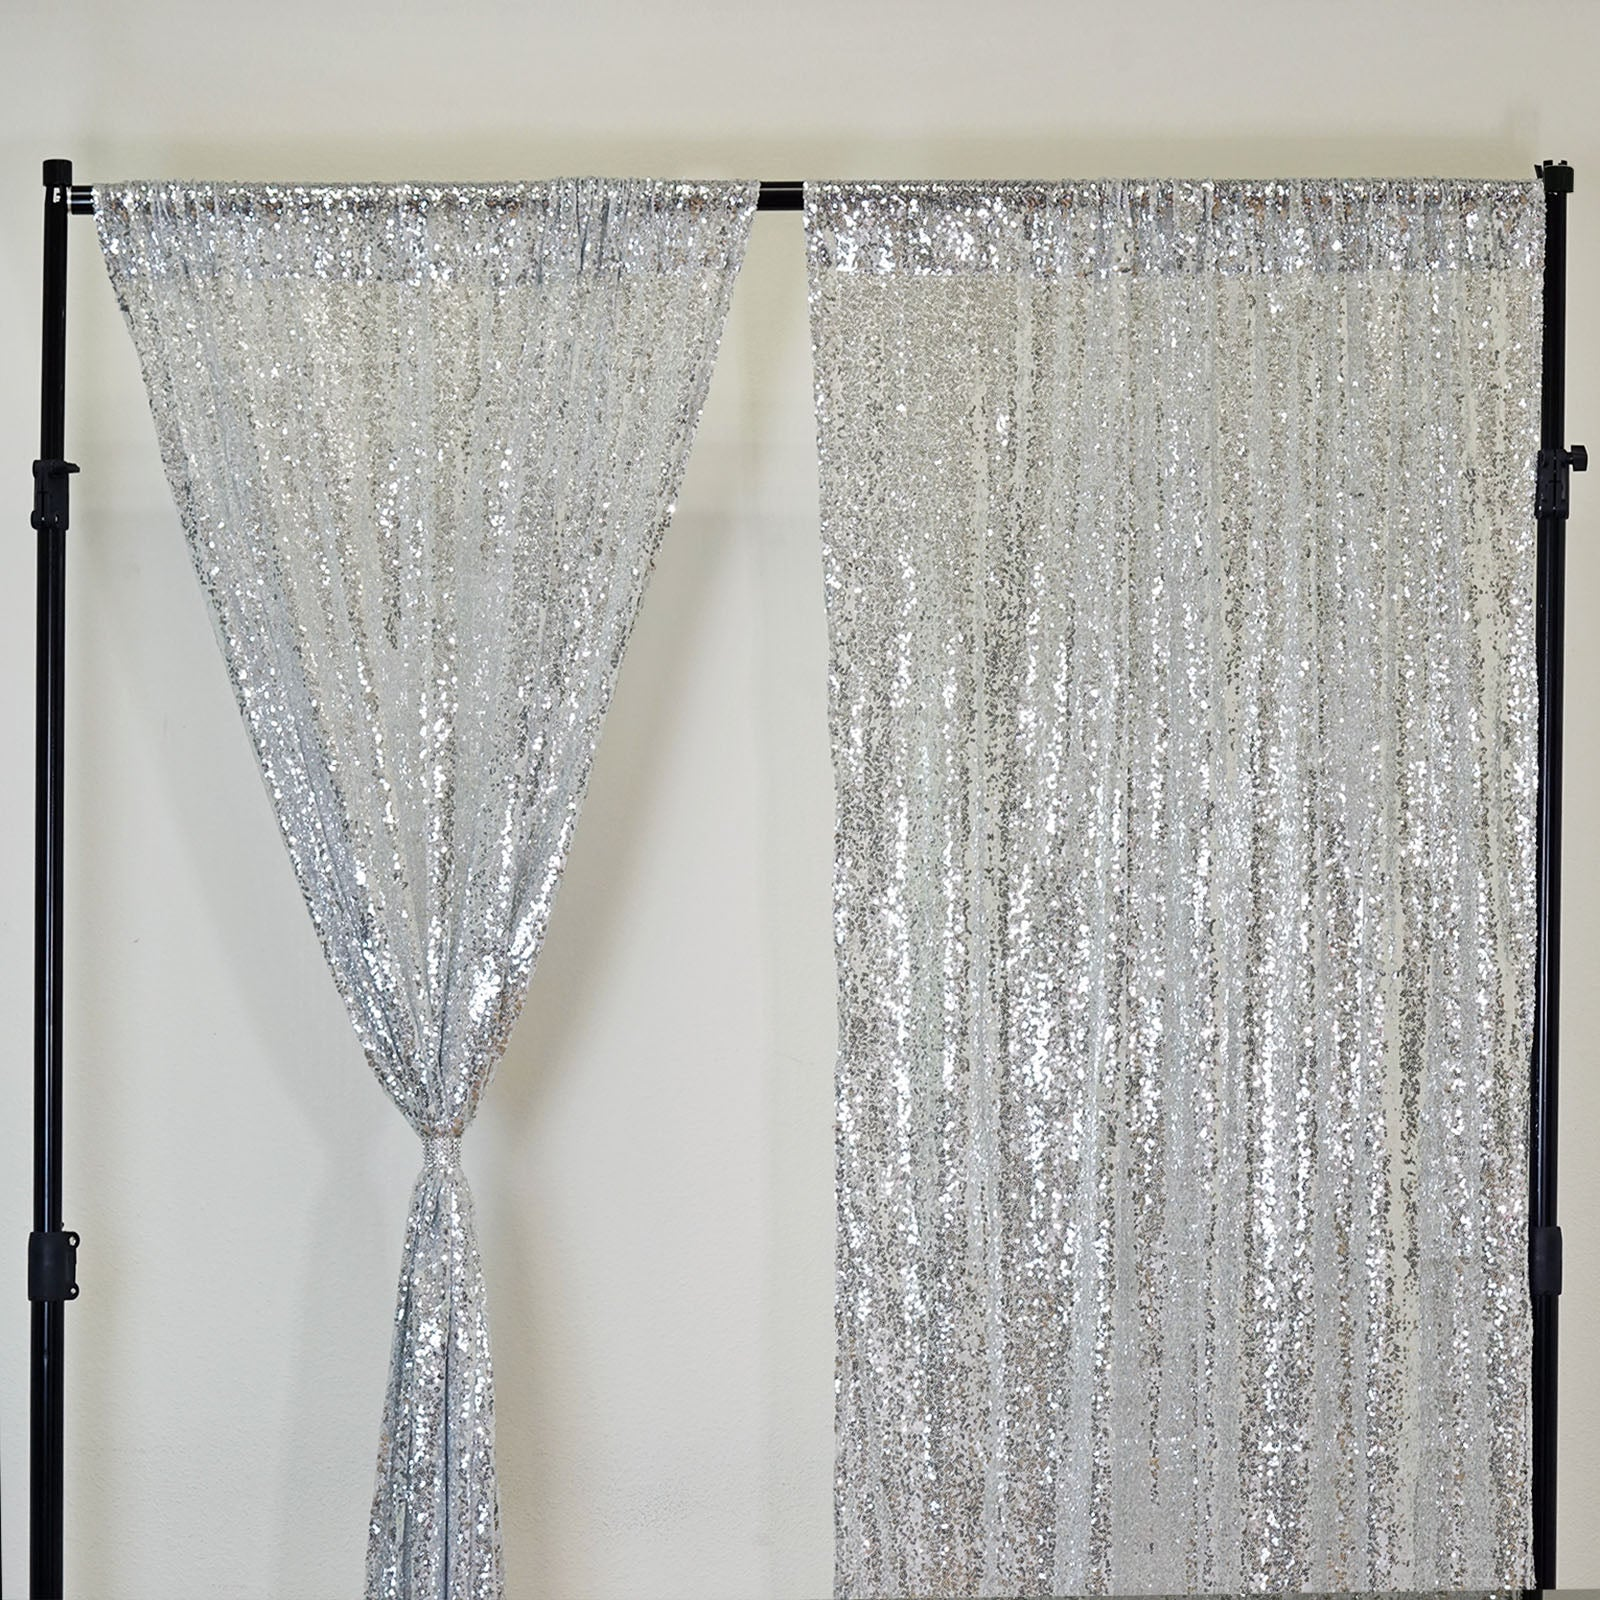 Glitzy Sequin Curtains 52x64 Silver Pack Of 2 Window Treatment Panels With Rod Pockets